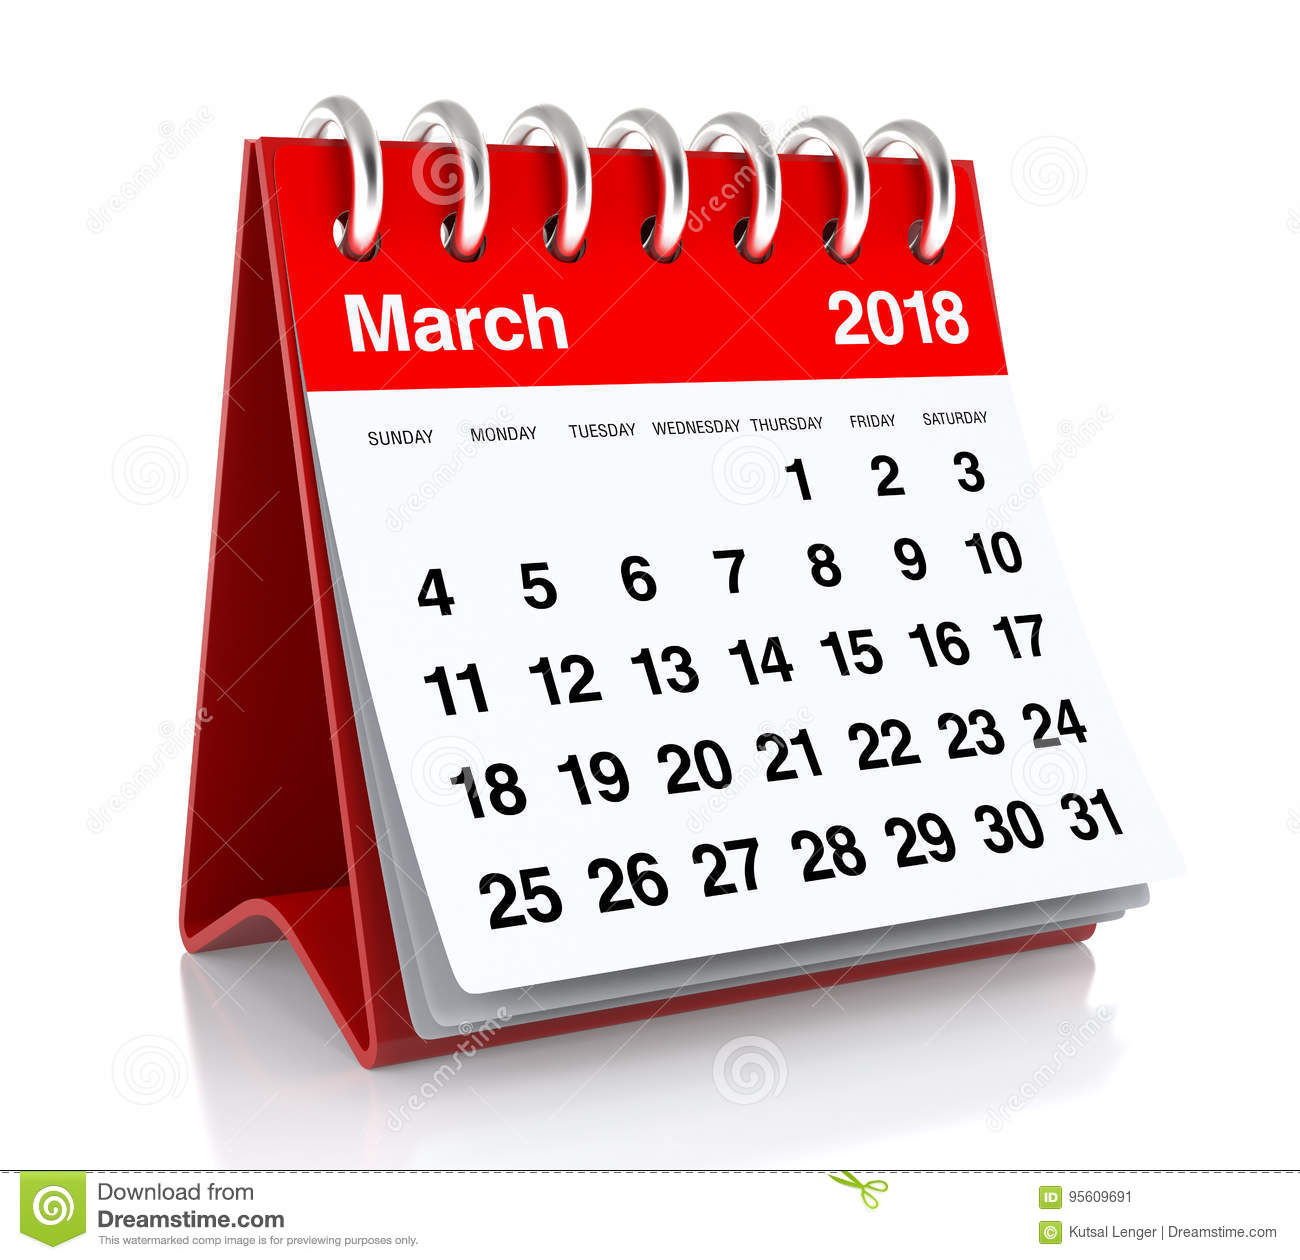 Calendar Clipart March 2018.